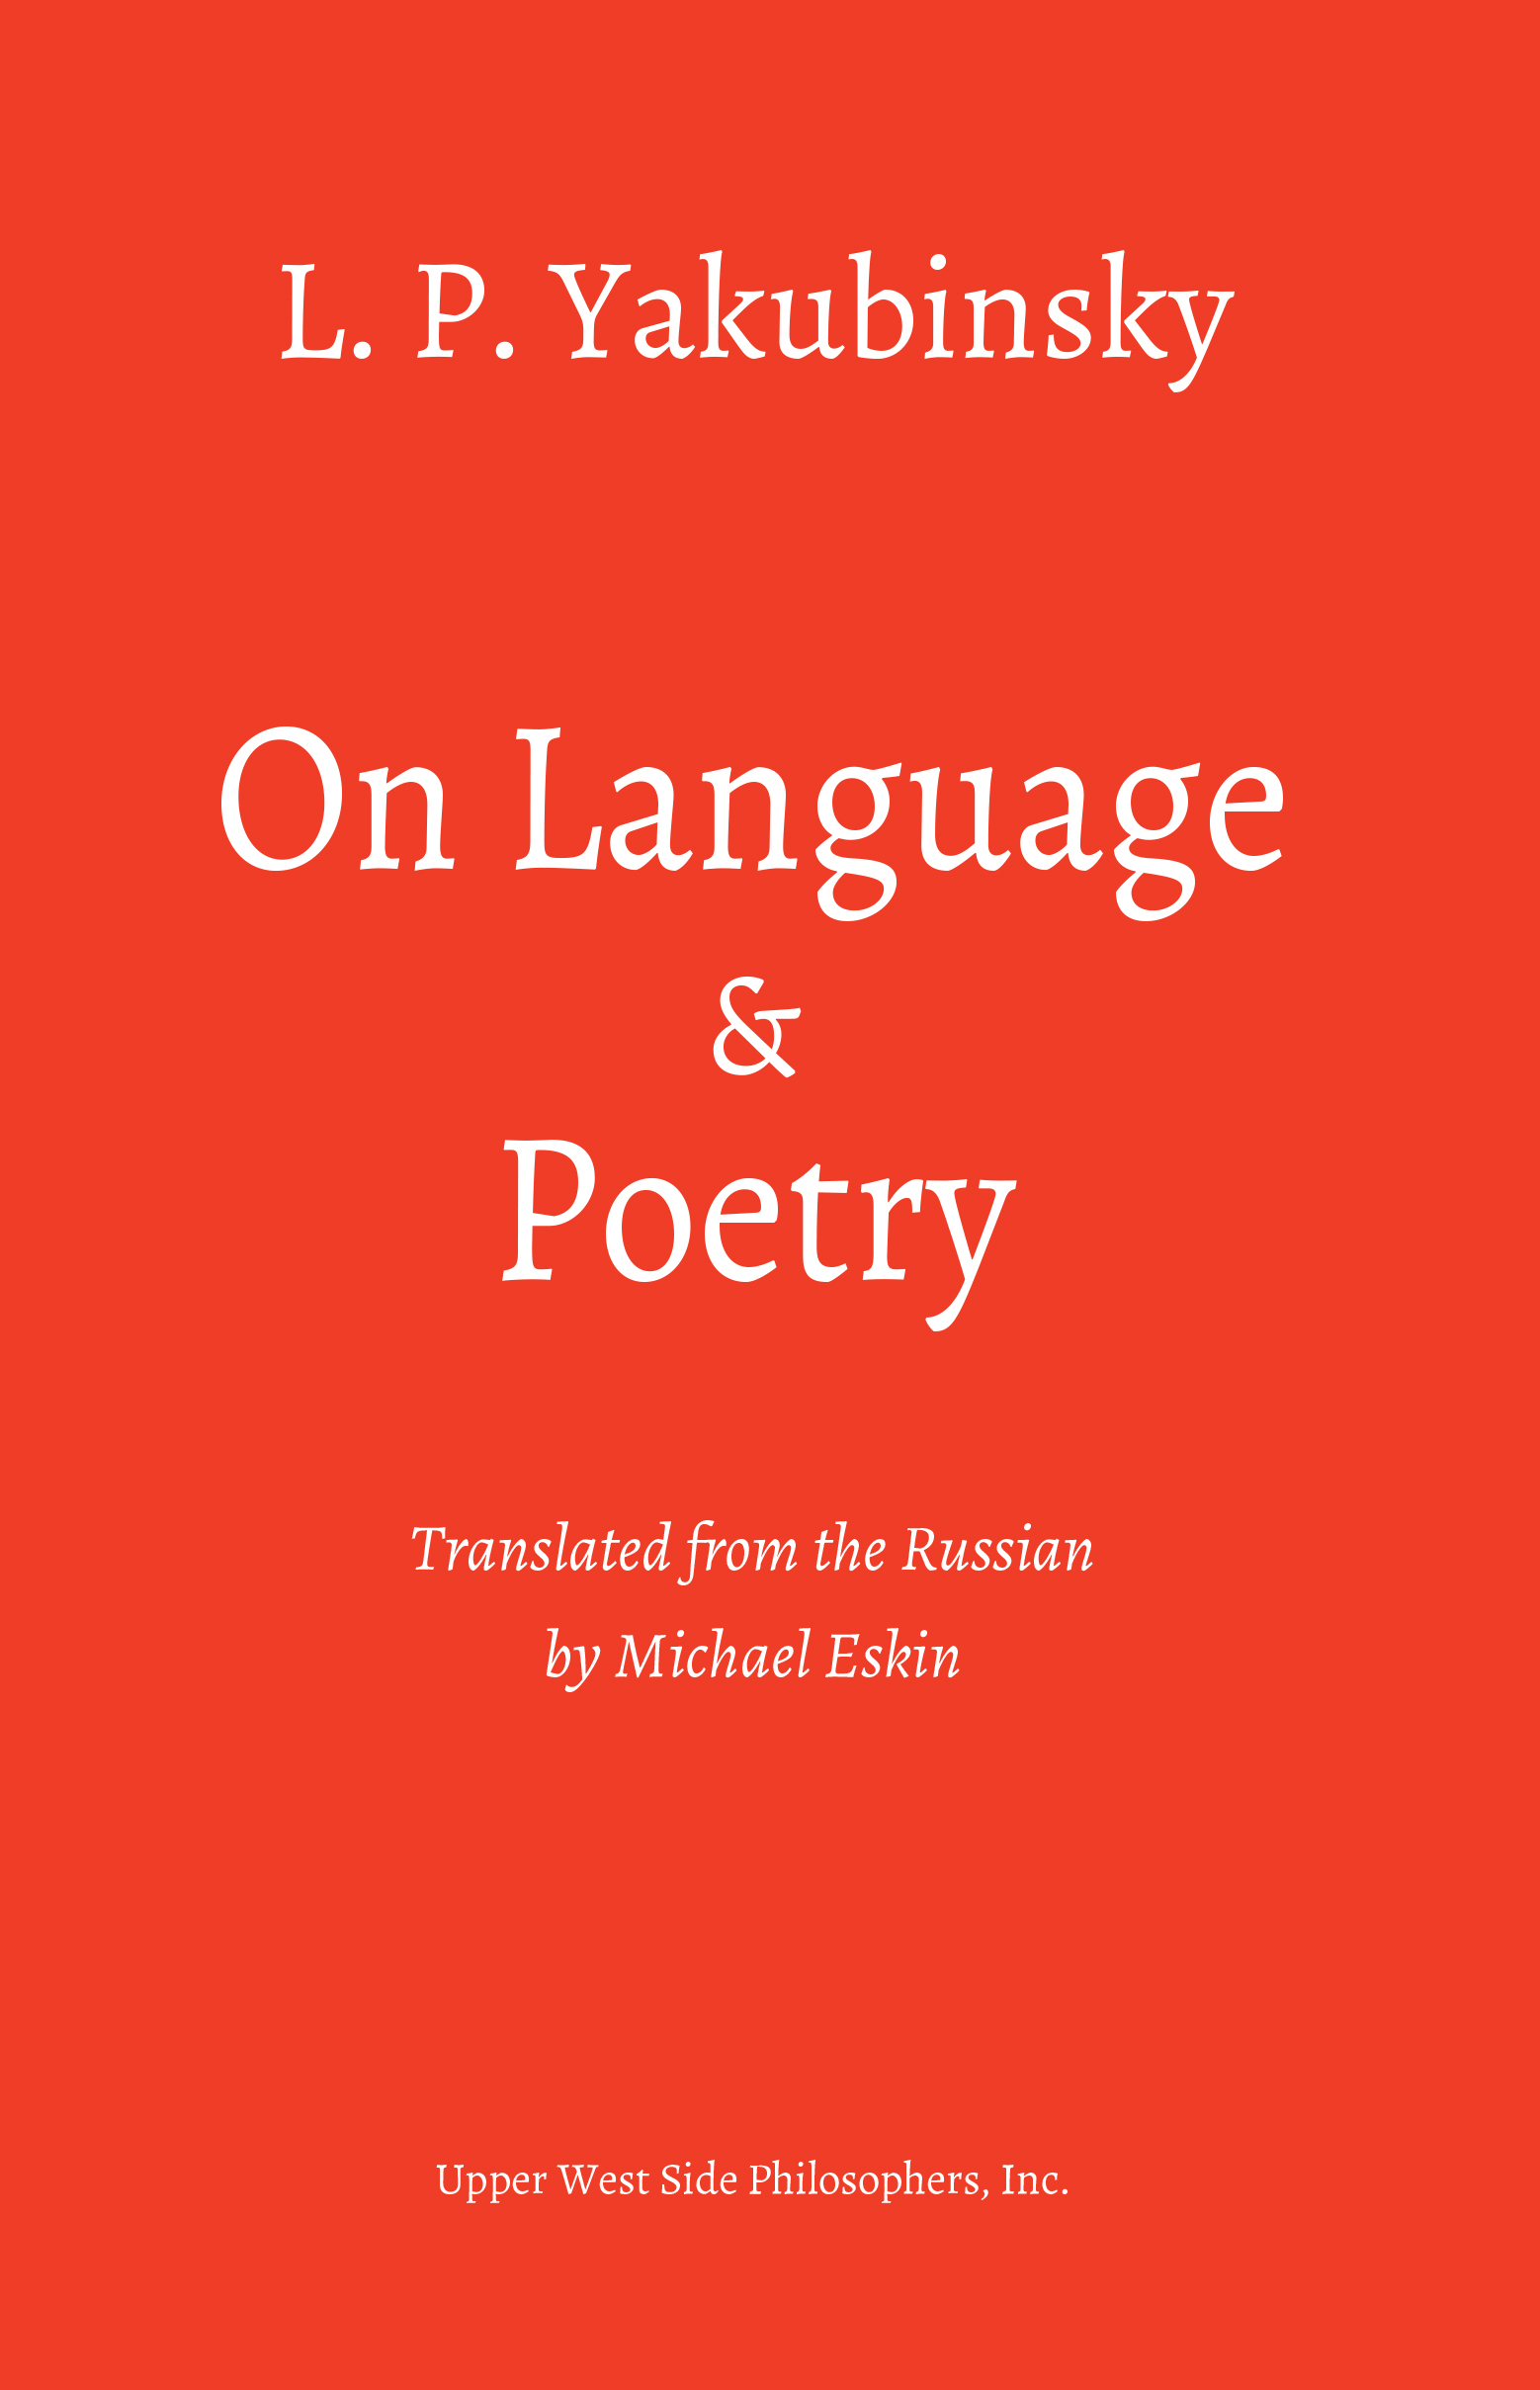 linguistics and poetry Using poetry to develop oral language skills give students the chance to read poems out loud reading poetry aloud is a great way for ells to practice pronunciation and fluency, as well as a chance for students to play with rhymes and language.